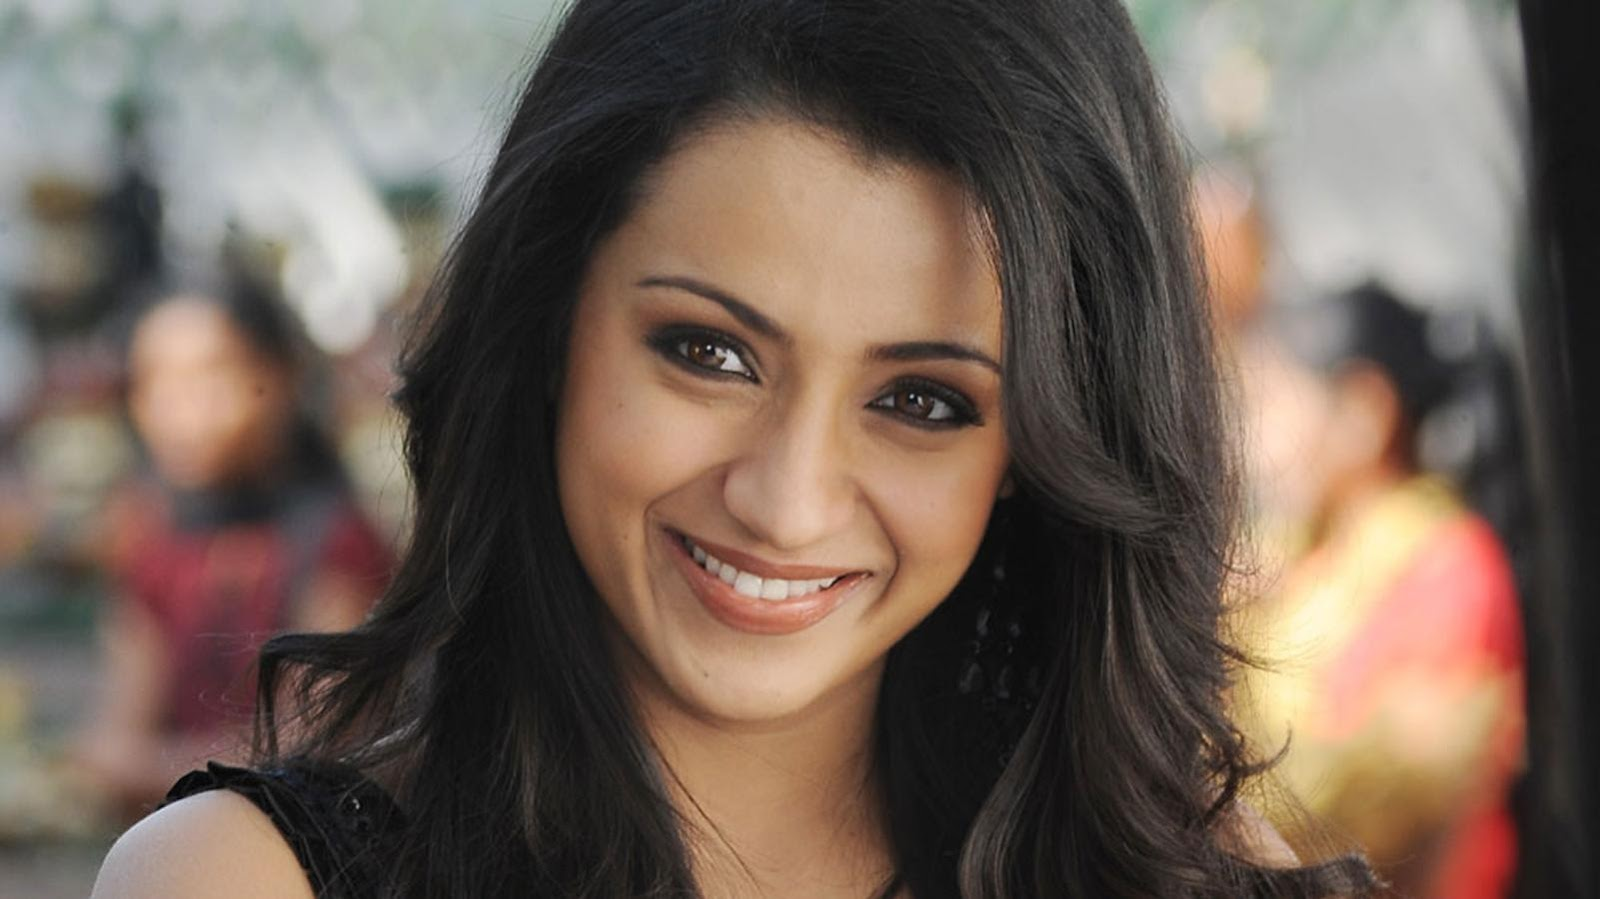 bollywood hd wallpapers 1080p: trisha krishnan hd wallpapers